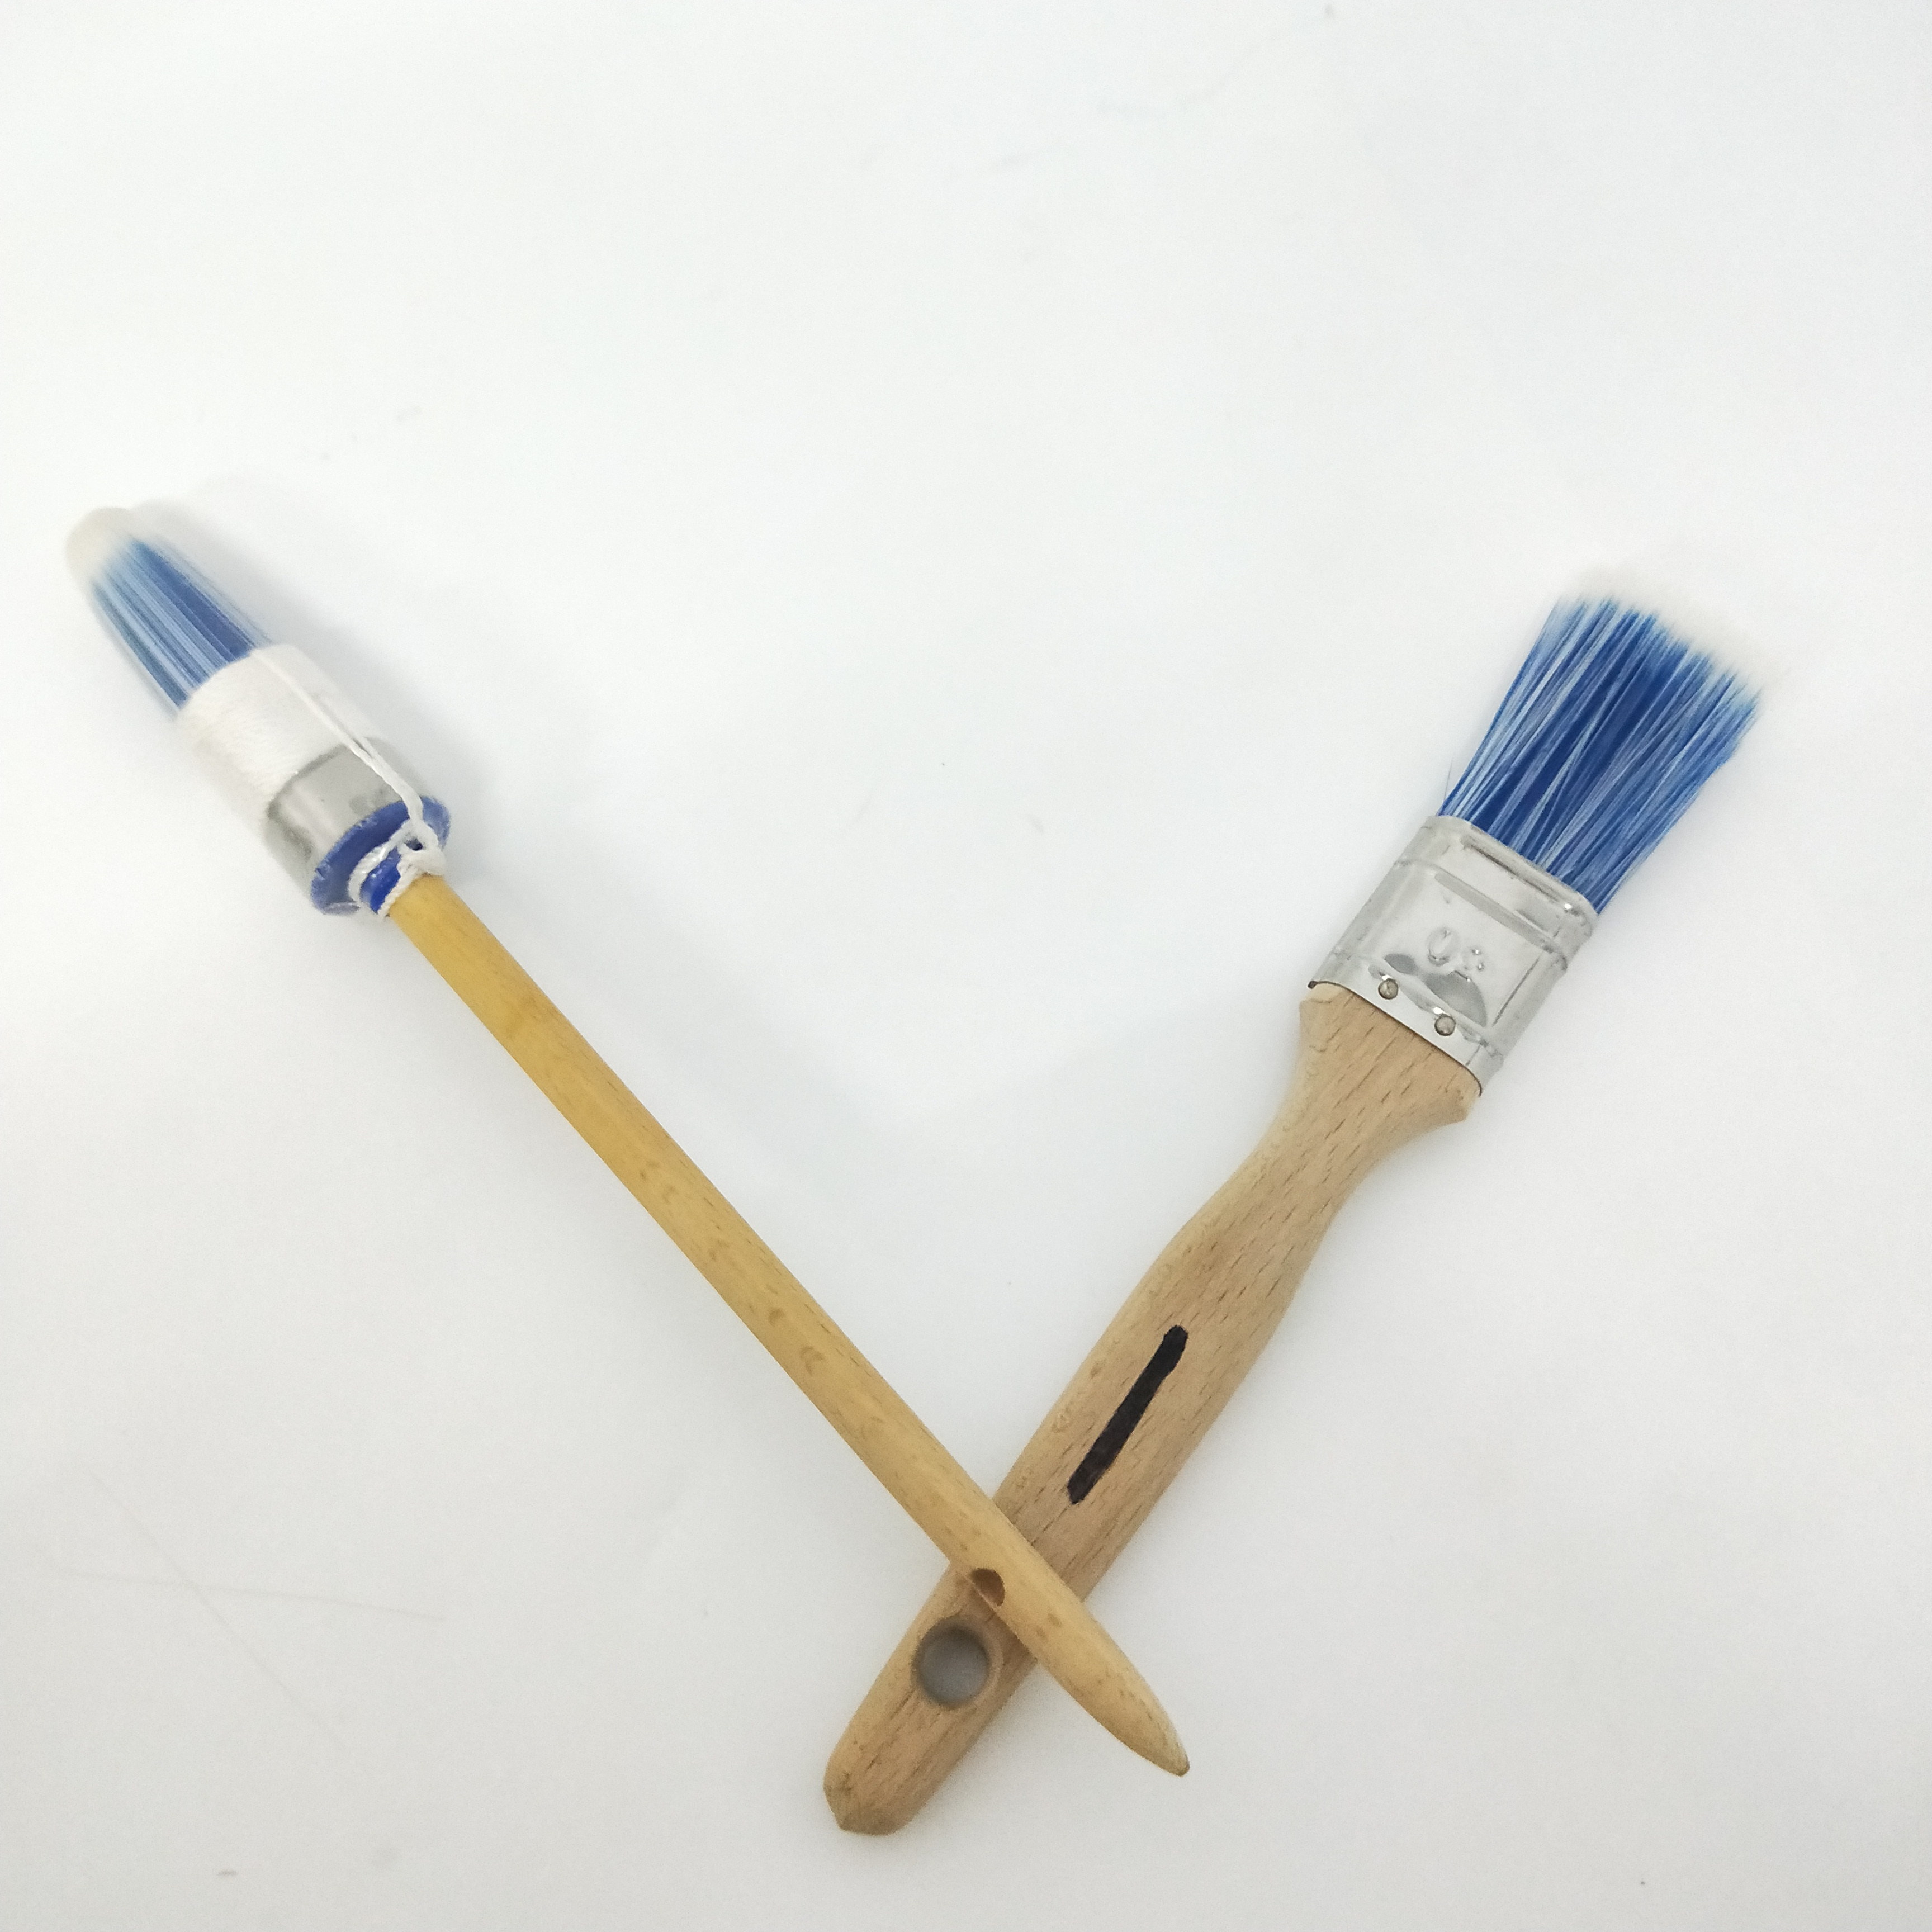 Pro Chalk & Wax Brush Set for Painting Furniture 3 Paint Brushes